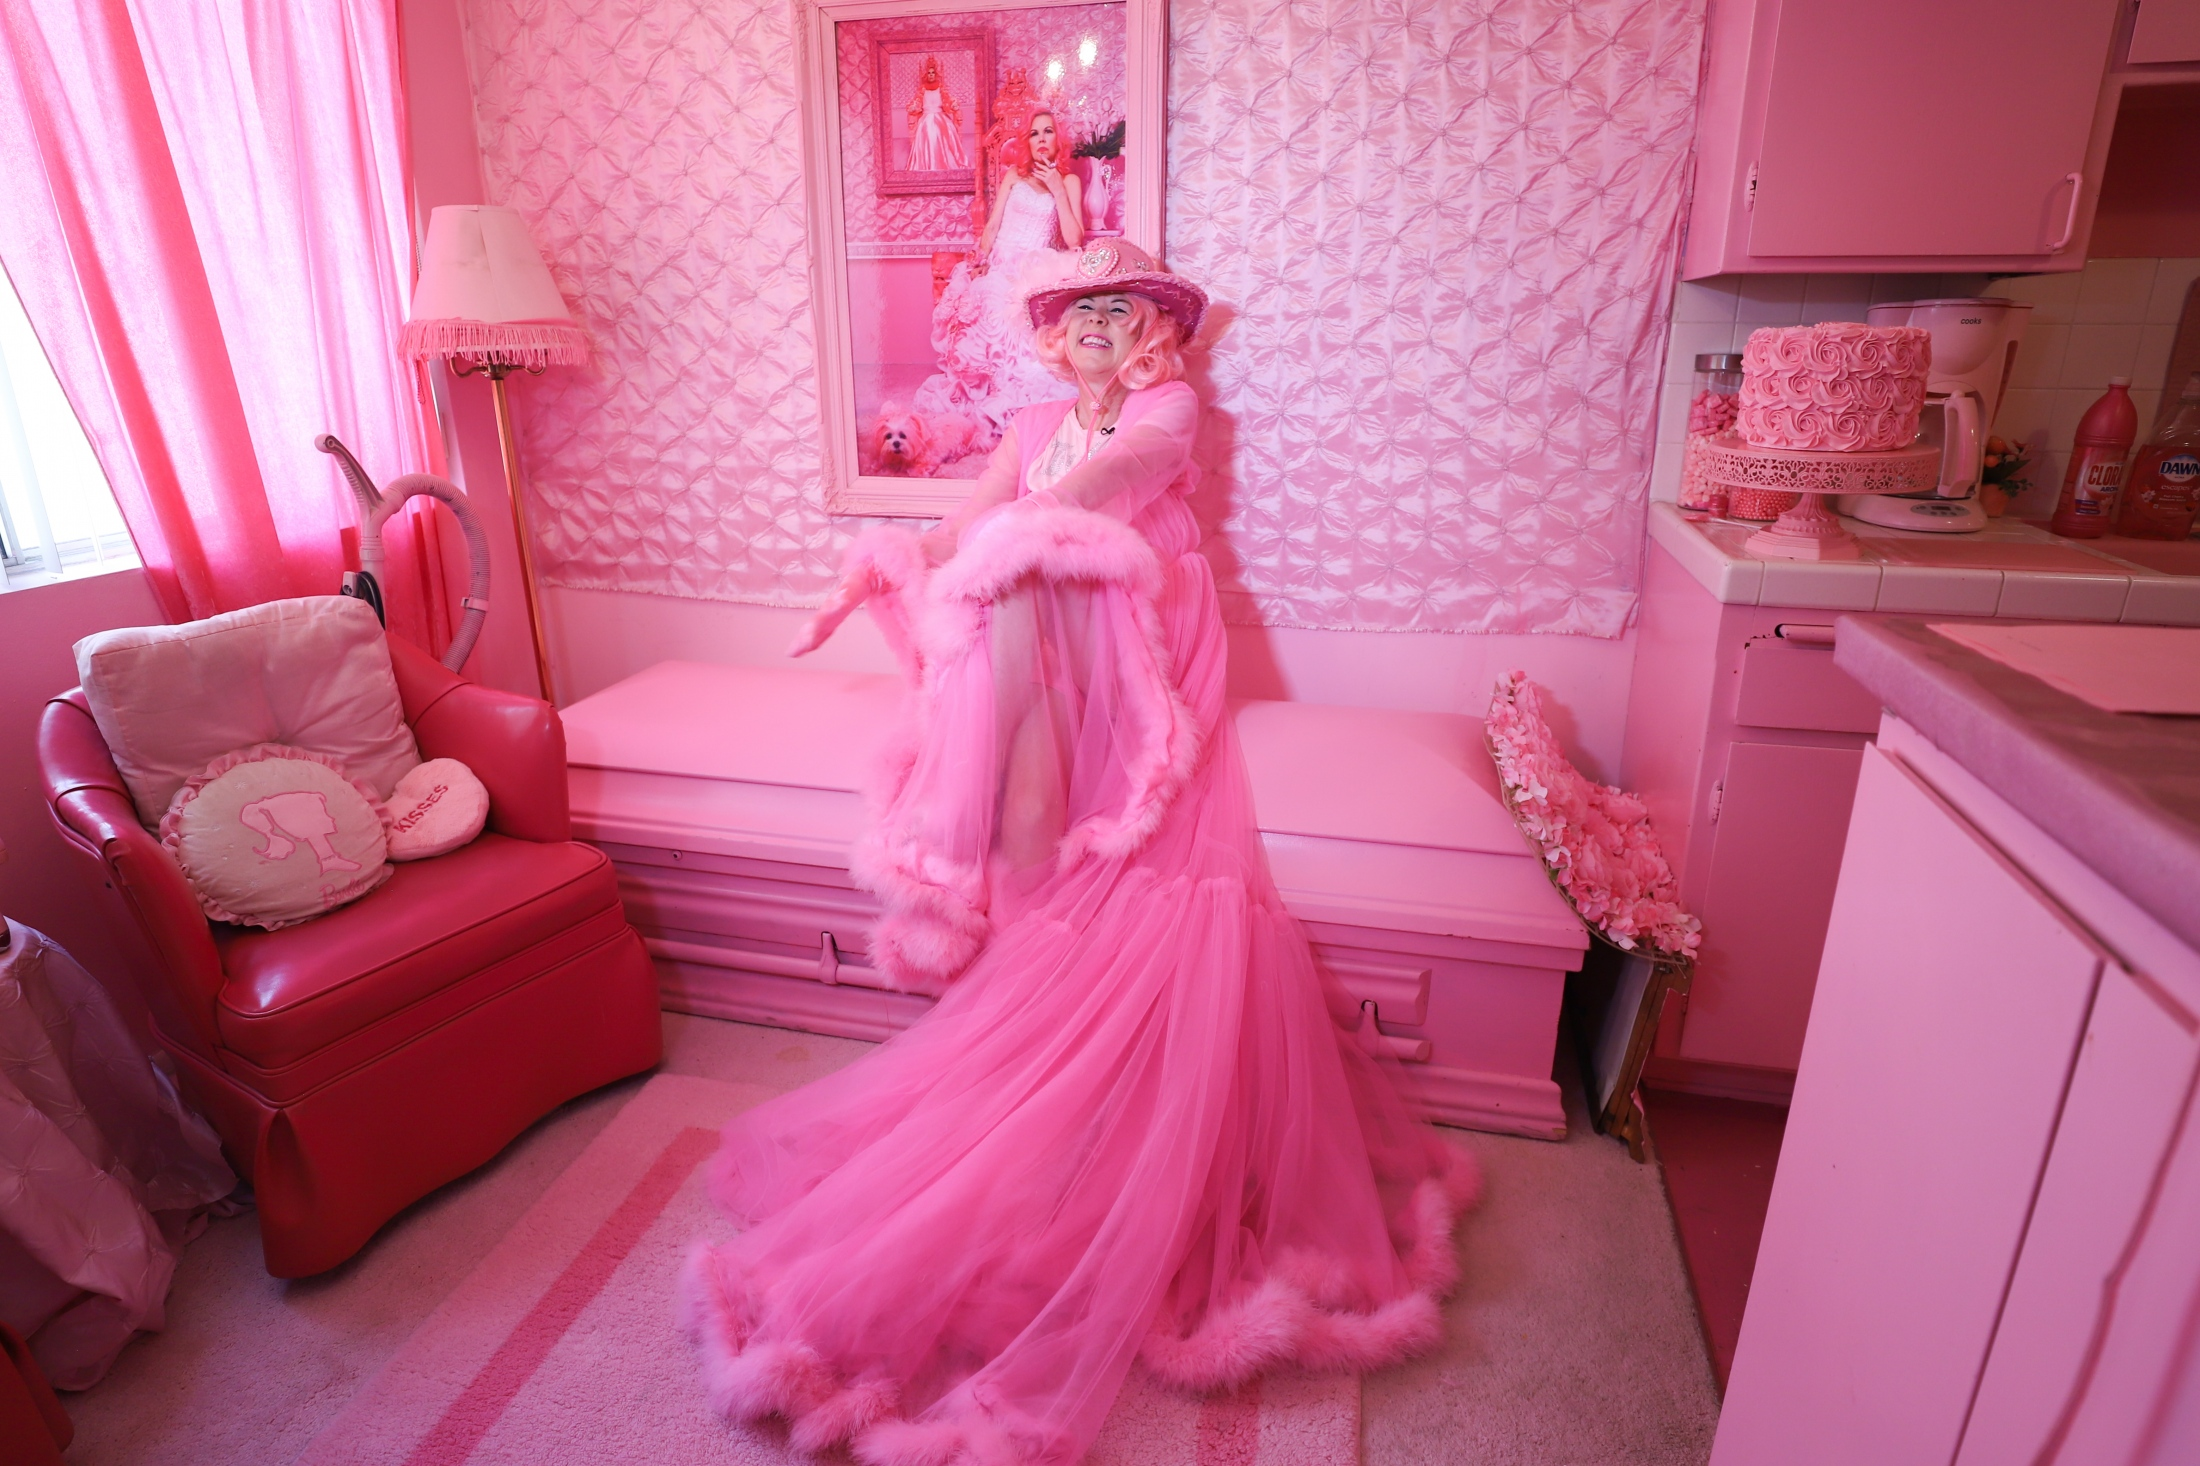 Art and Documentary Photography - Loading Silva_Pink_Lady_of_Hollywood_4535.jpg